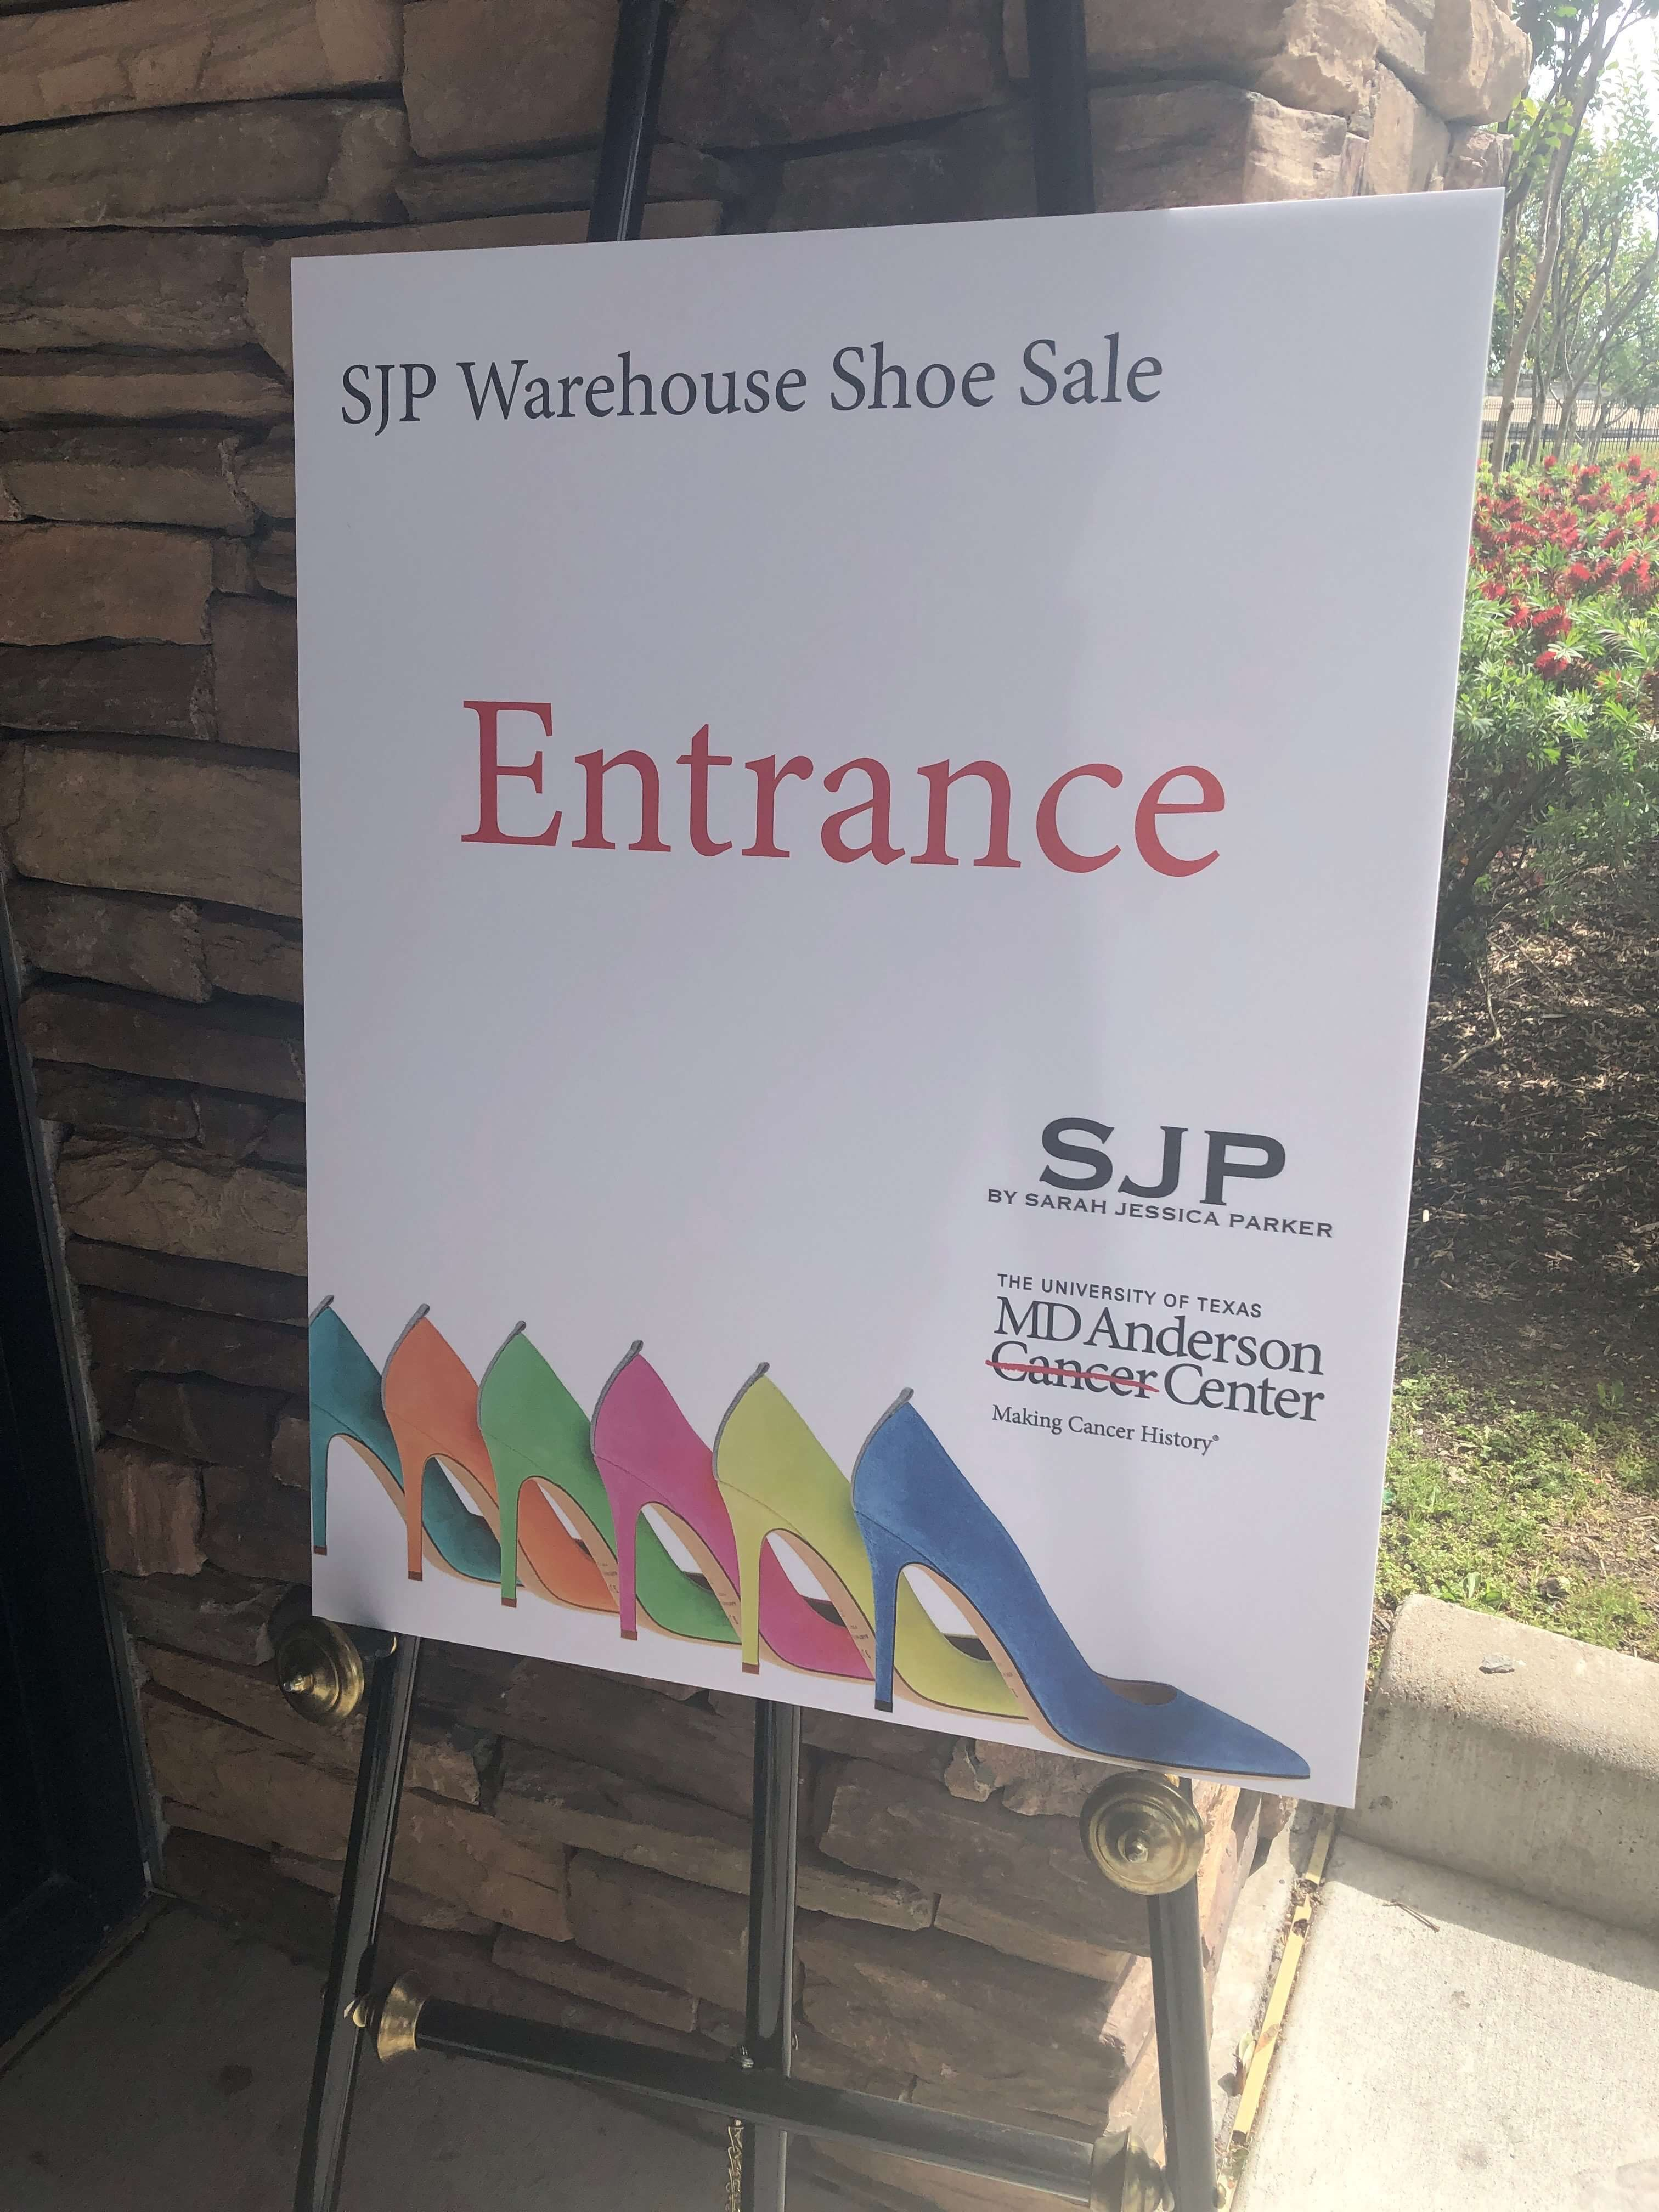 Thousands lined up for the SJP Warehouse Shoe Sale at the Bayou City Event Center.